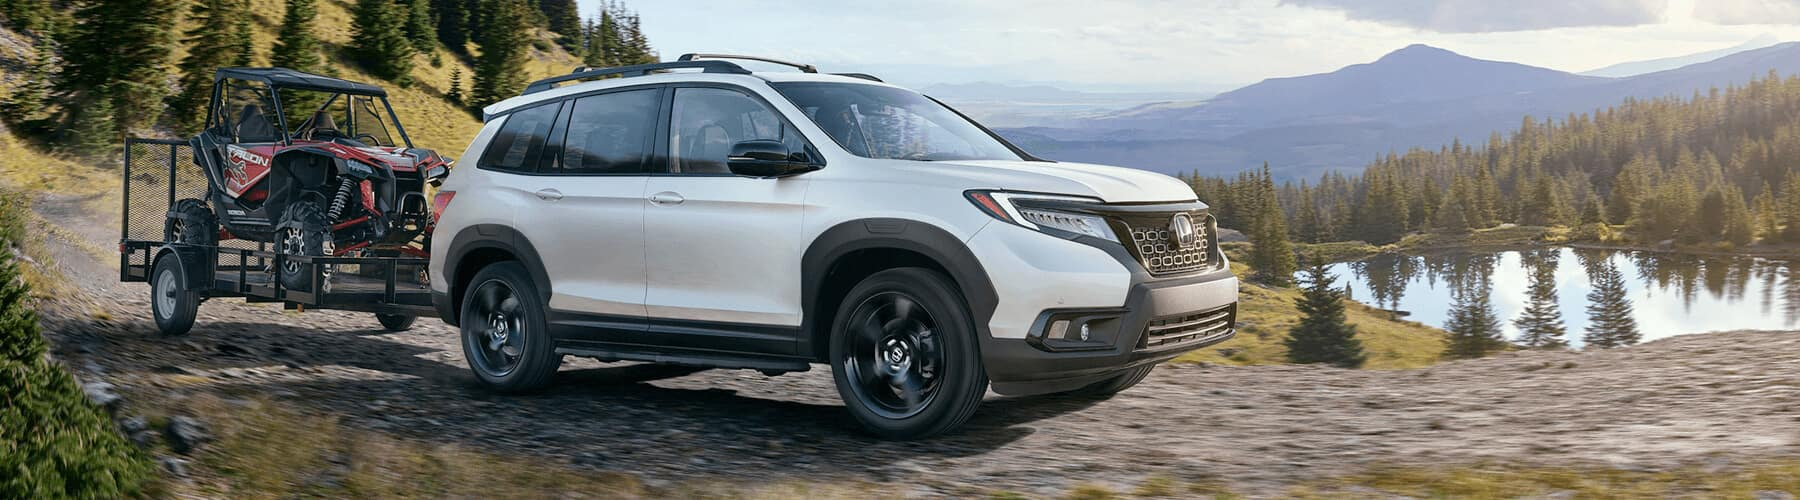 2020 Honda Passport Slider